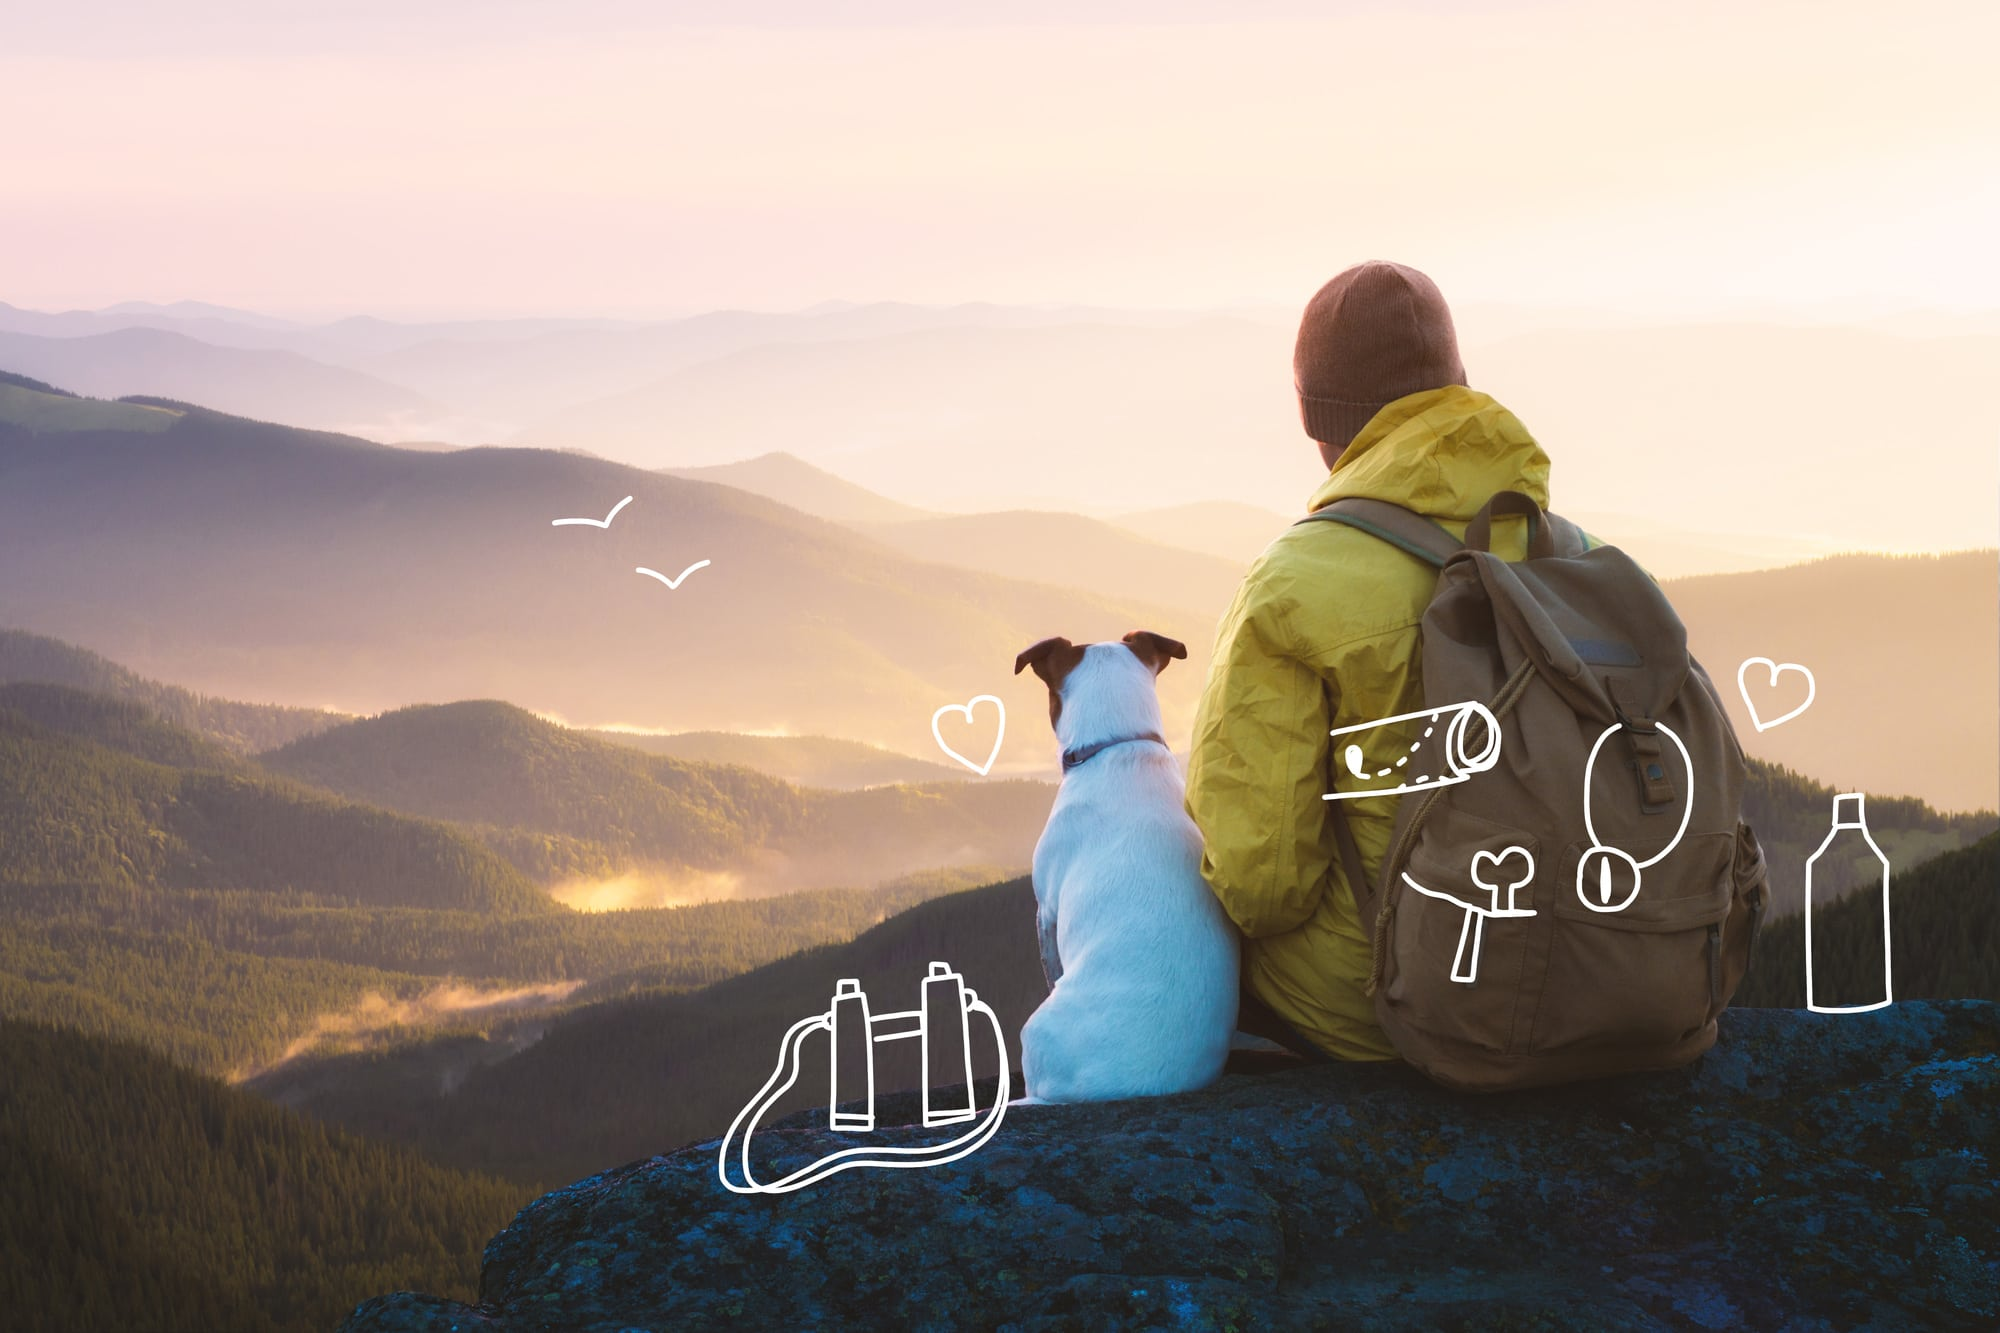 Vaccinating dogs and puppies - Jack Russell Terrier and a man admire the view from the mountain top